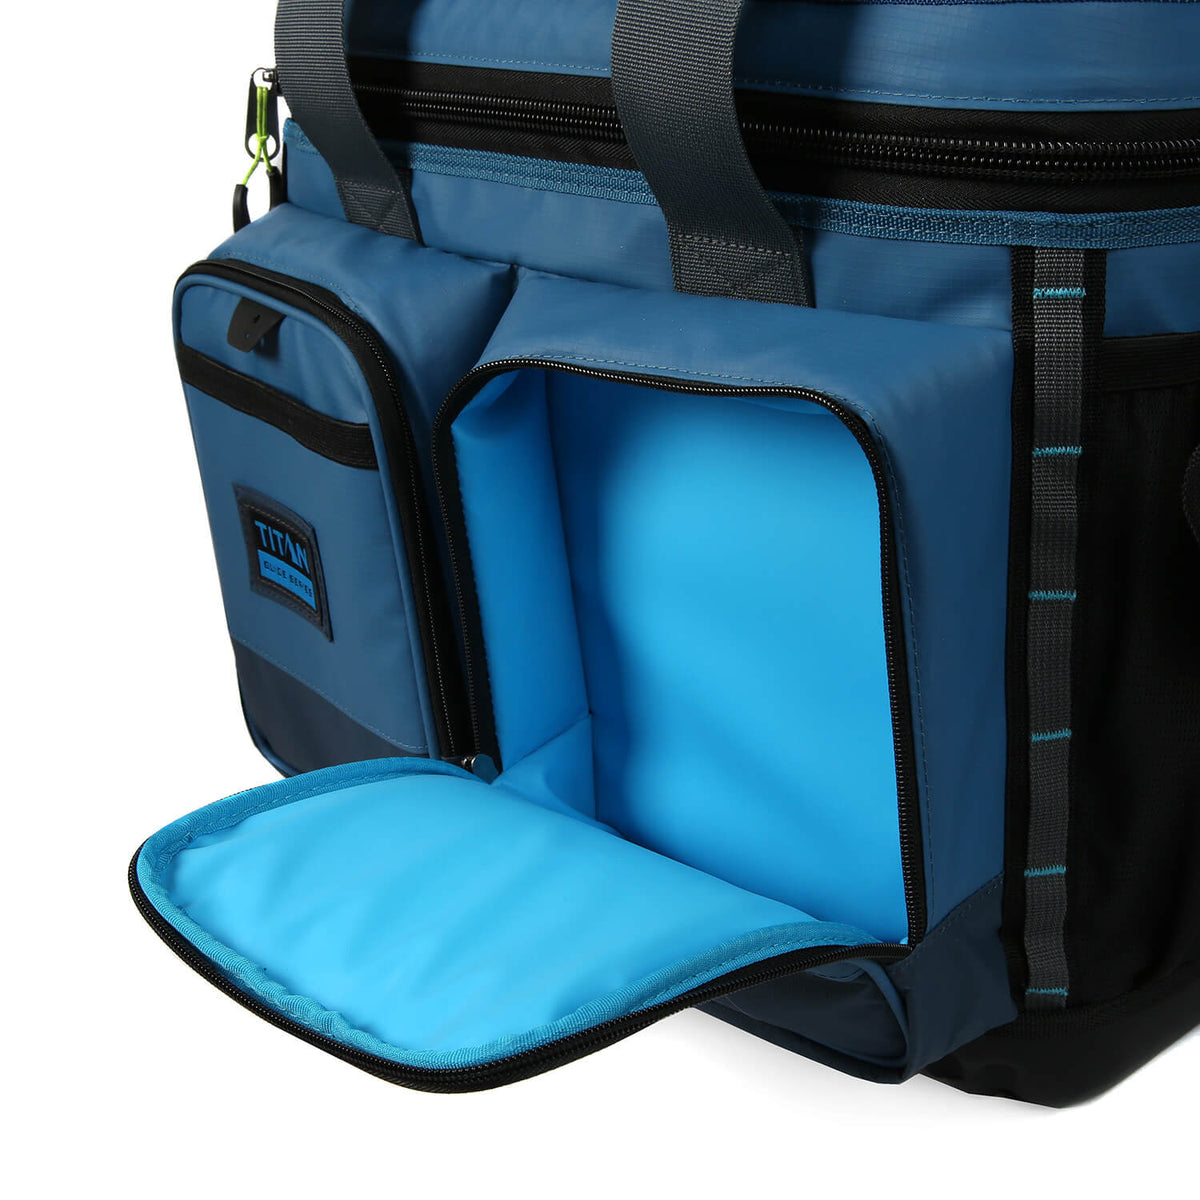 Titan Guide Series™ 36 Can Cooler - Insulated front pockets